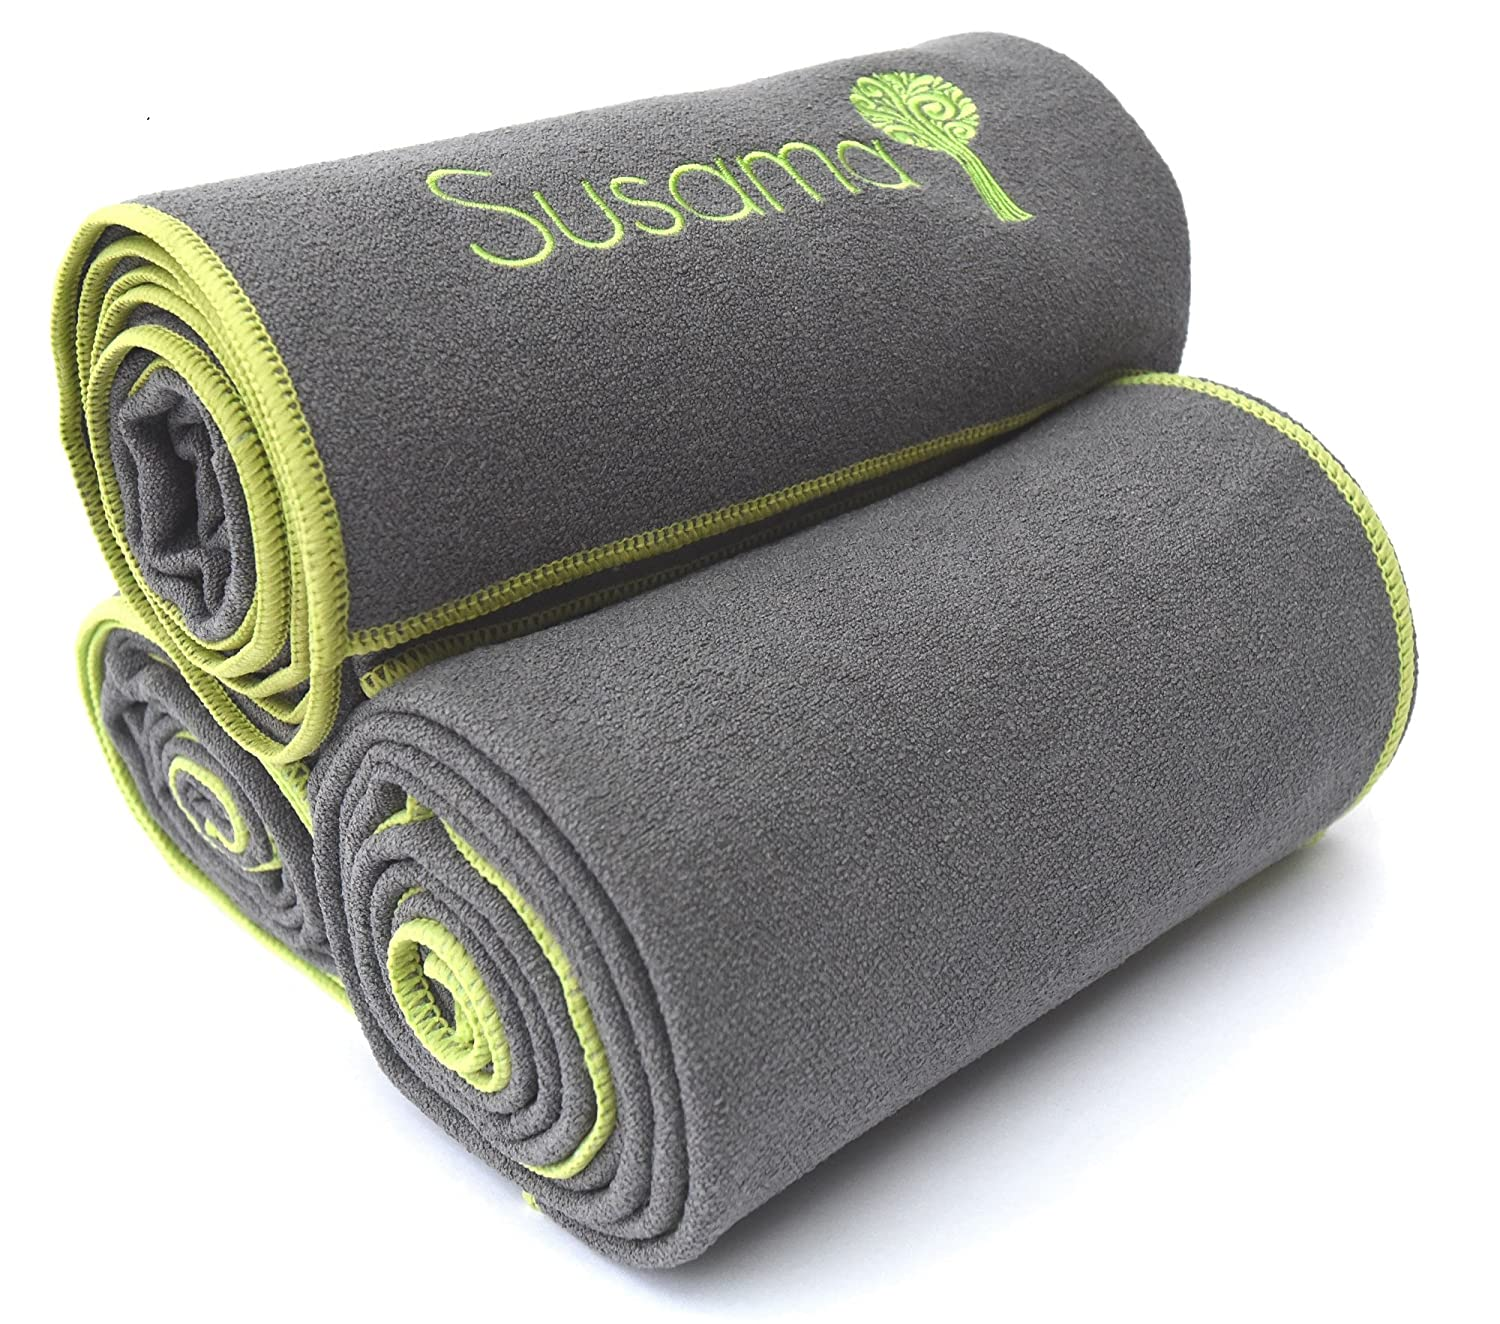 Popular Yoga Towel! All-in-1 Sports & Hot Yoga Towel